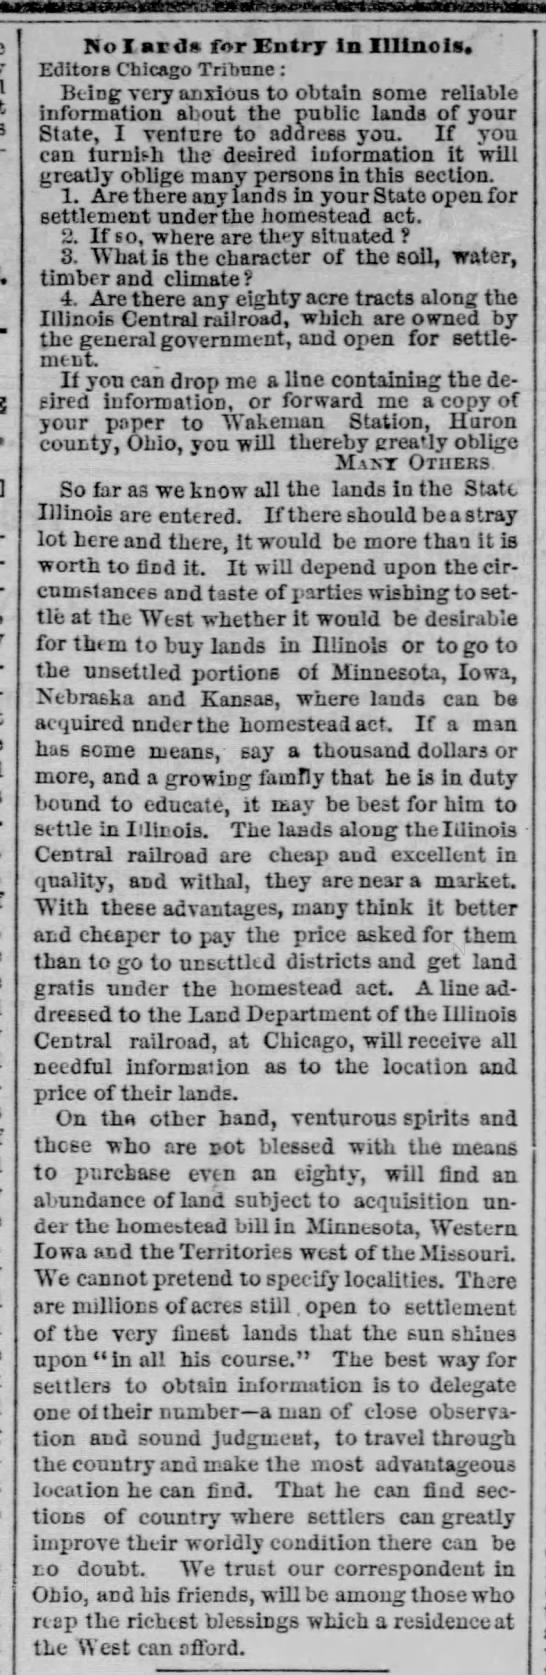 Newspaper says that there is no land available for settlement under the Homestead Act in Illinois -